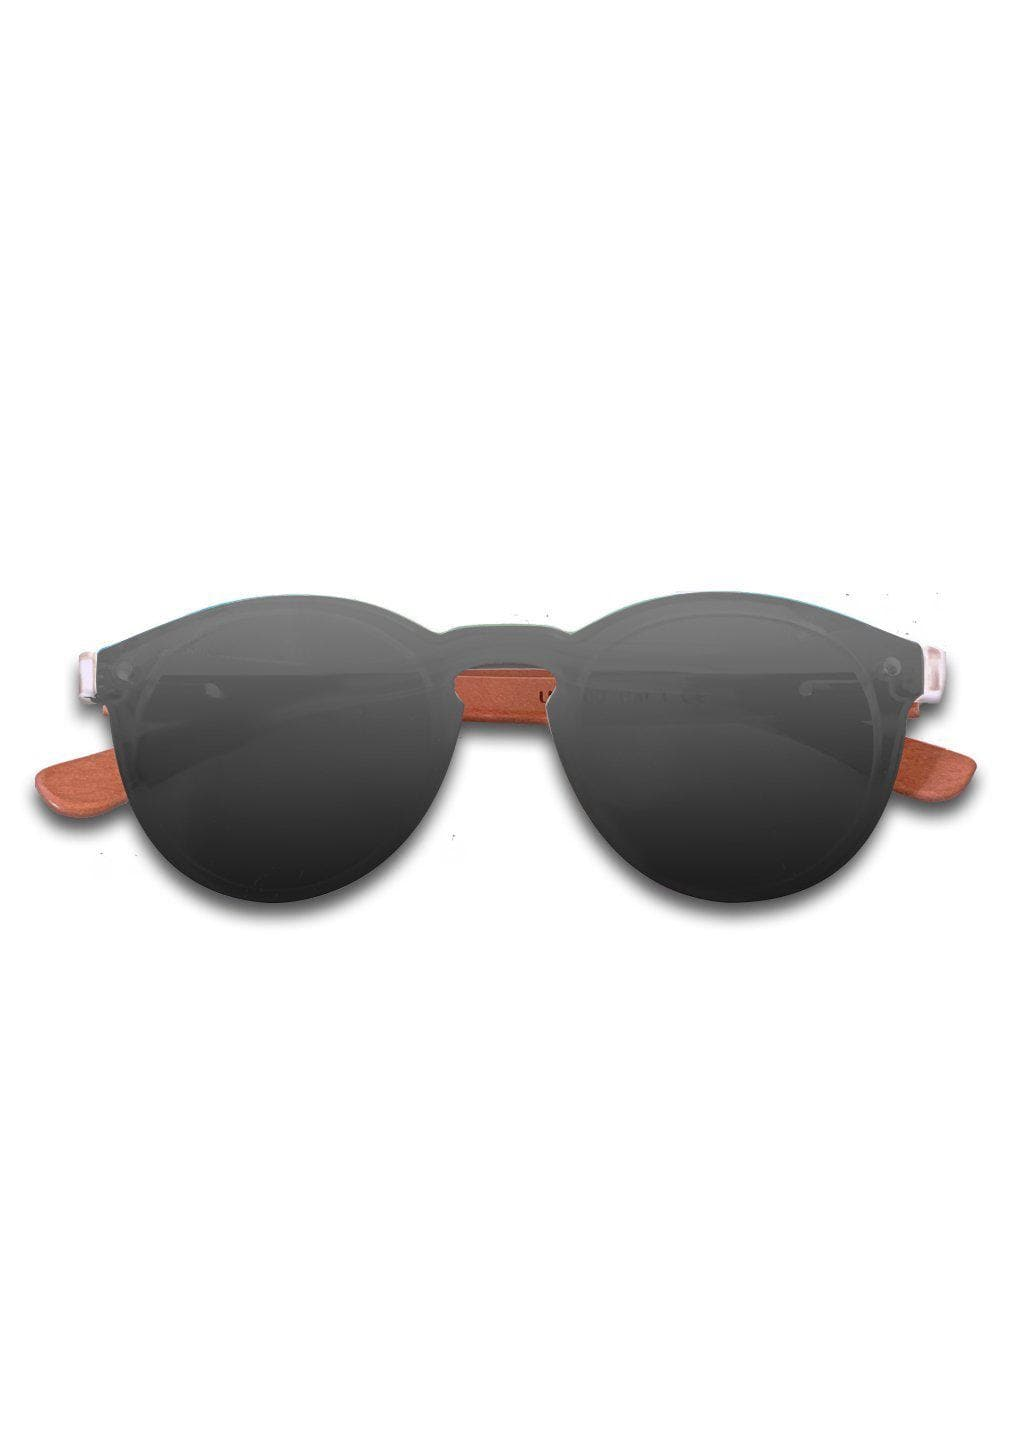 Eyewood Tomorrow - Orion - Our wooden sunglasses for the future.